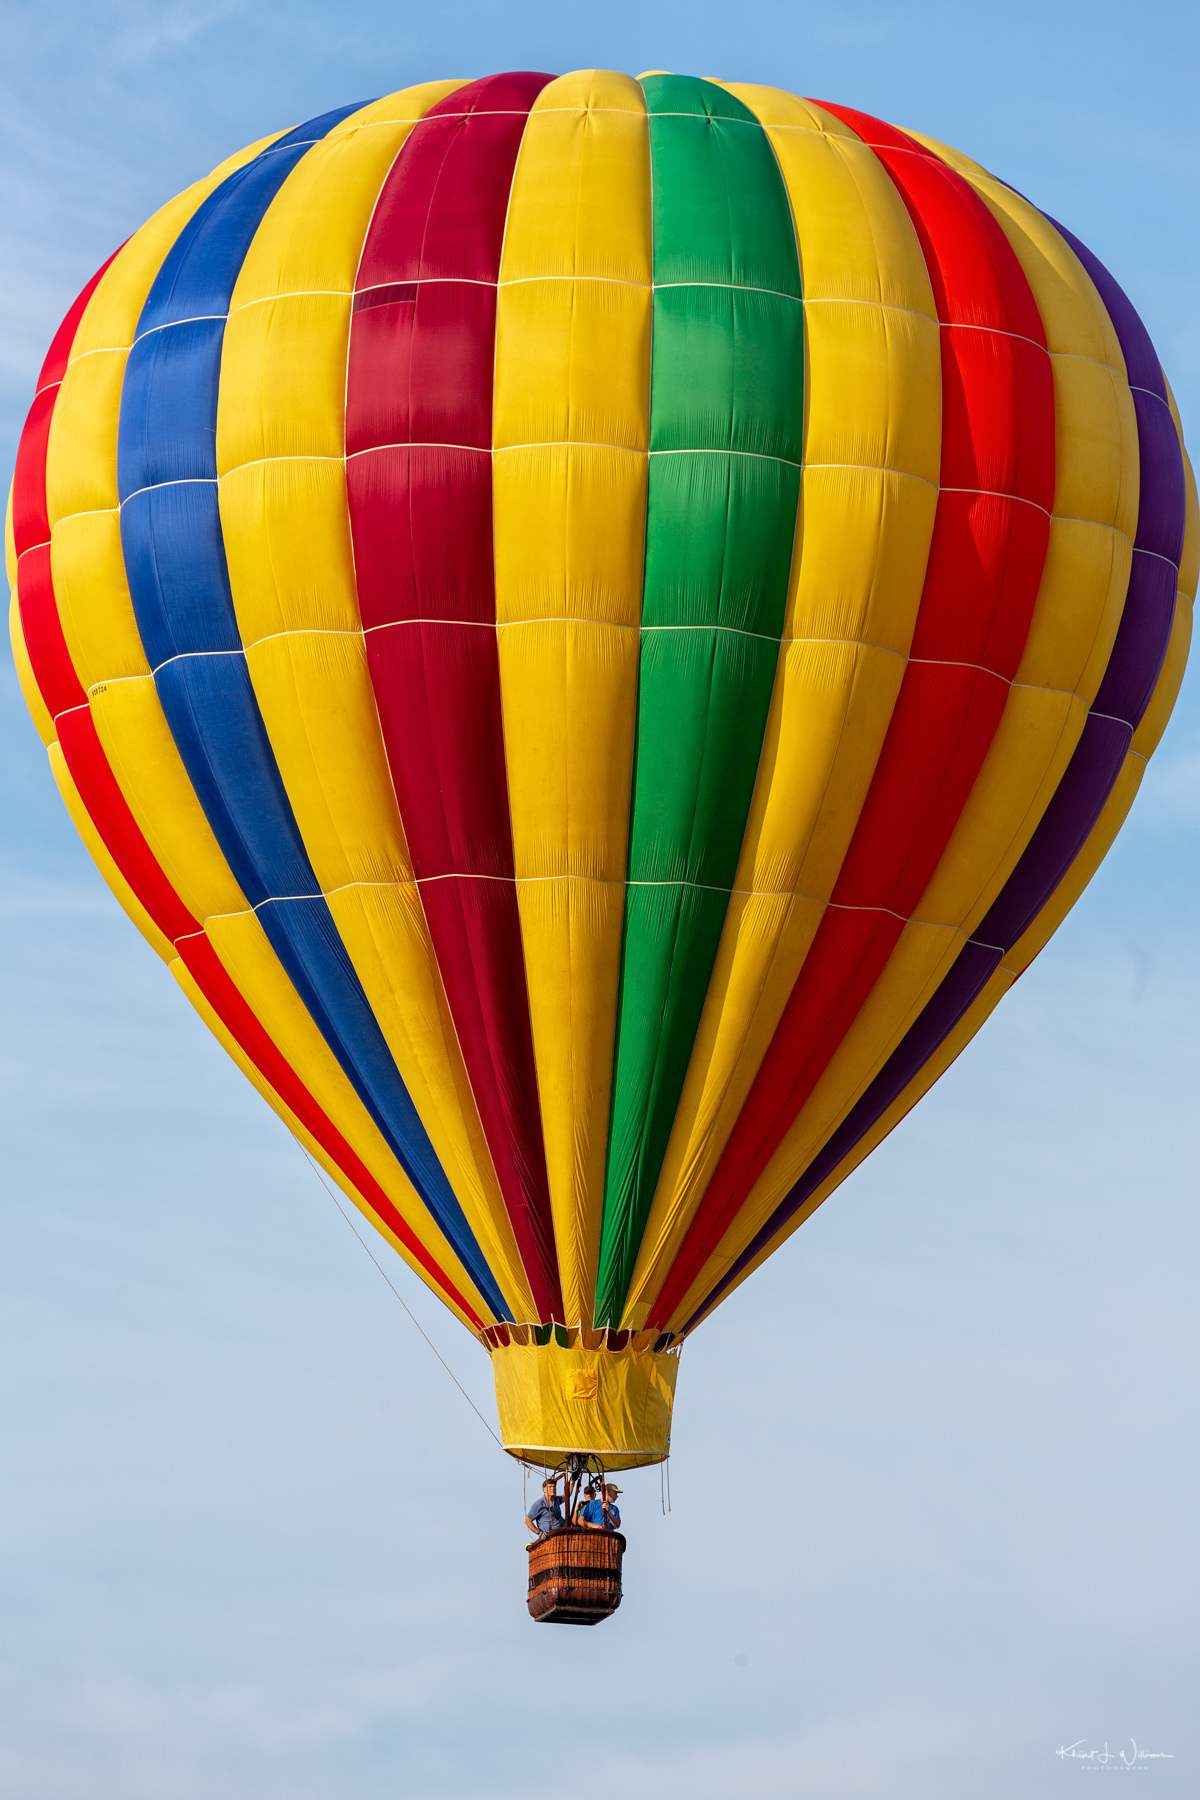 QuickChek Festival of Ballooning pre festival Media Launch QuickChek Festival of Ballooning Media Launch Canon EOS 5D Mark III 20180727 7052 Edit blog